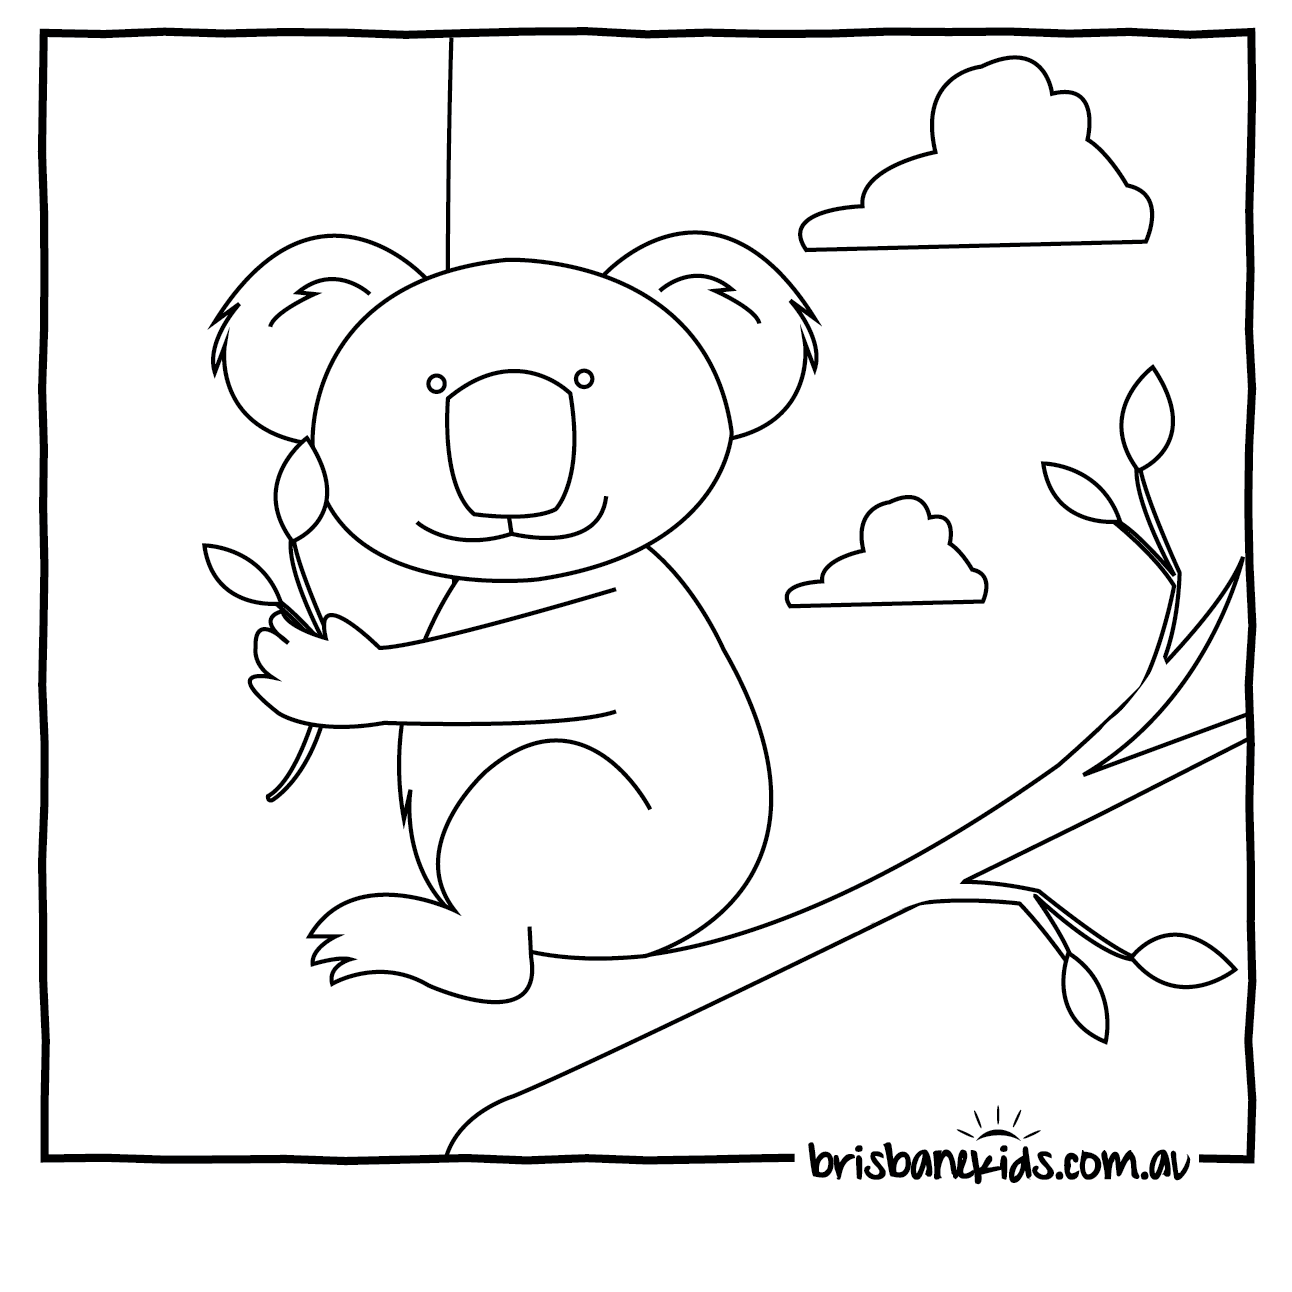 1292x1292 Australian Animals Colouring Pages Brisbane Kids